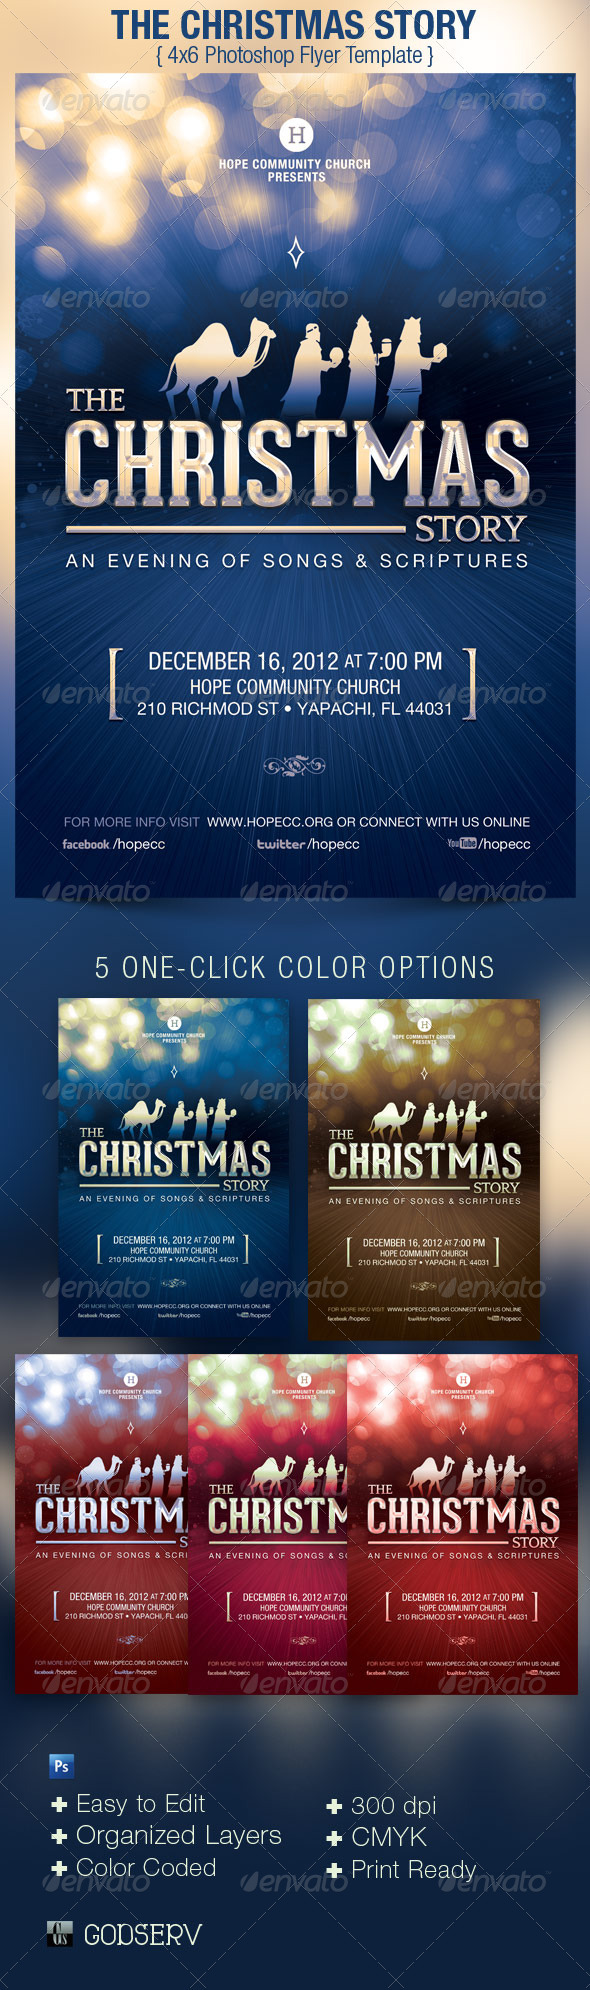 The Christmas Story Church Flyer Template - Church Flyers